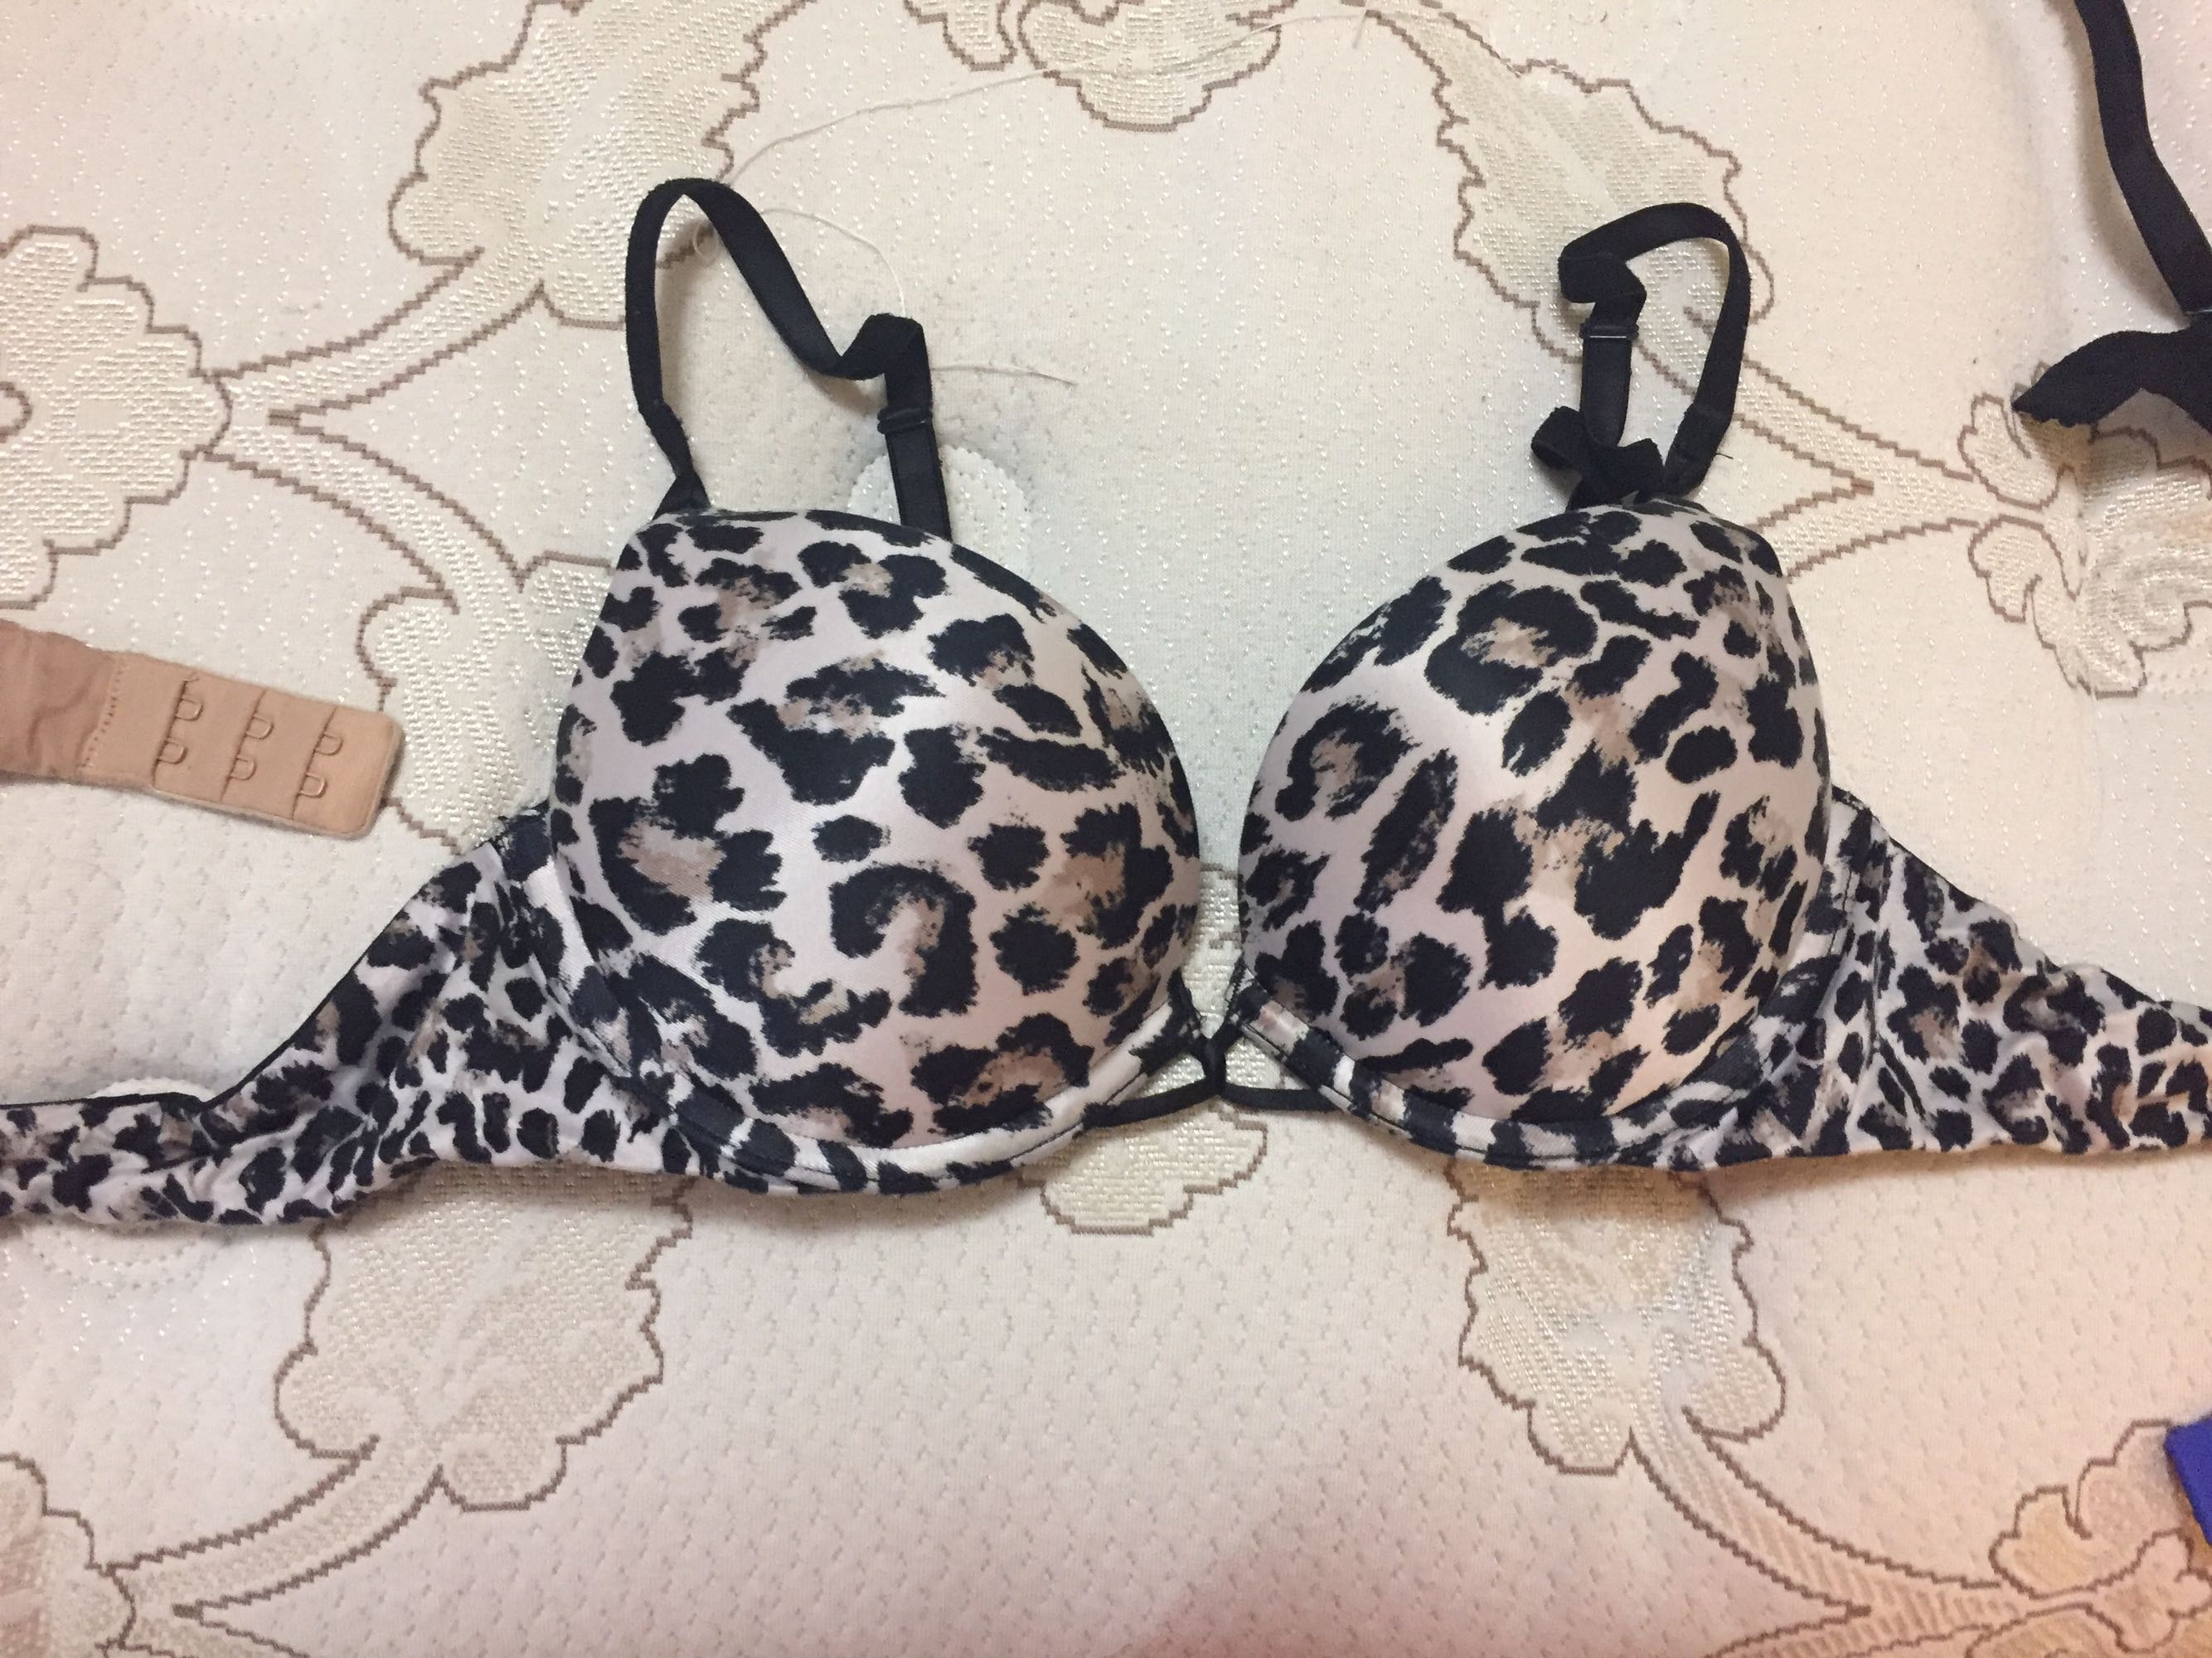 Miraculous plunge bombshell bra. 32b. Adds two cup sizes. VGUC